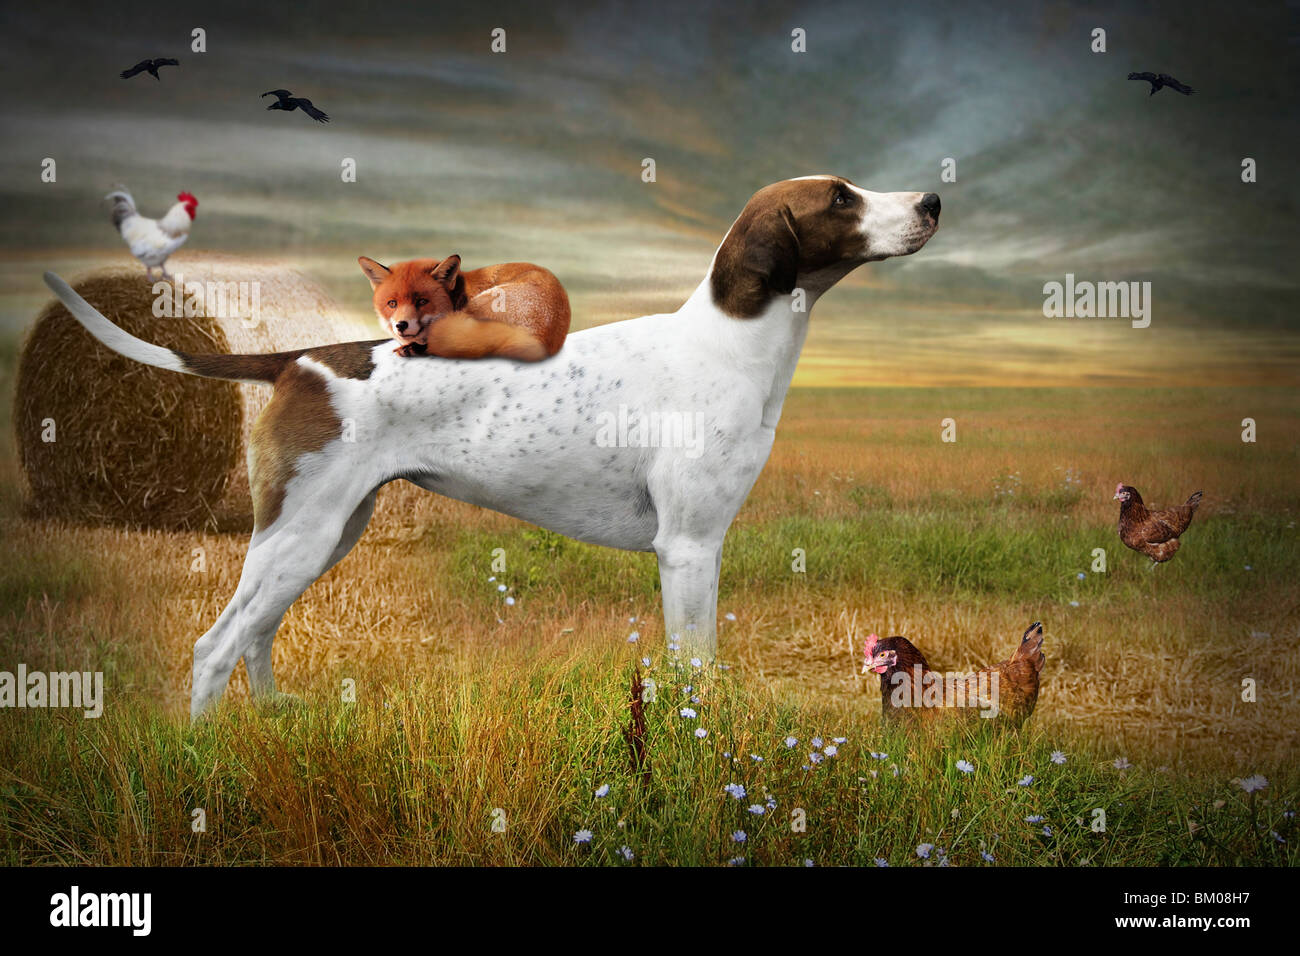 Hound with a fox asleep on it's back with chickens in a field - Stock Image